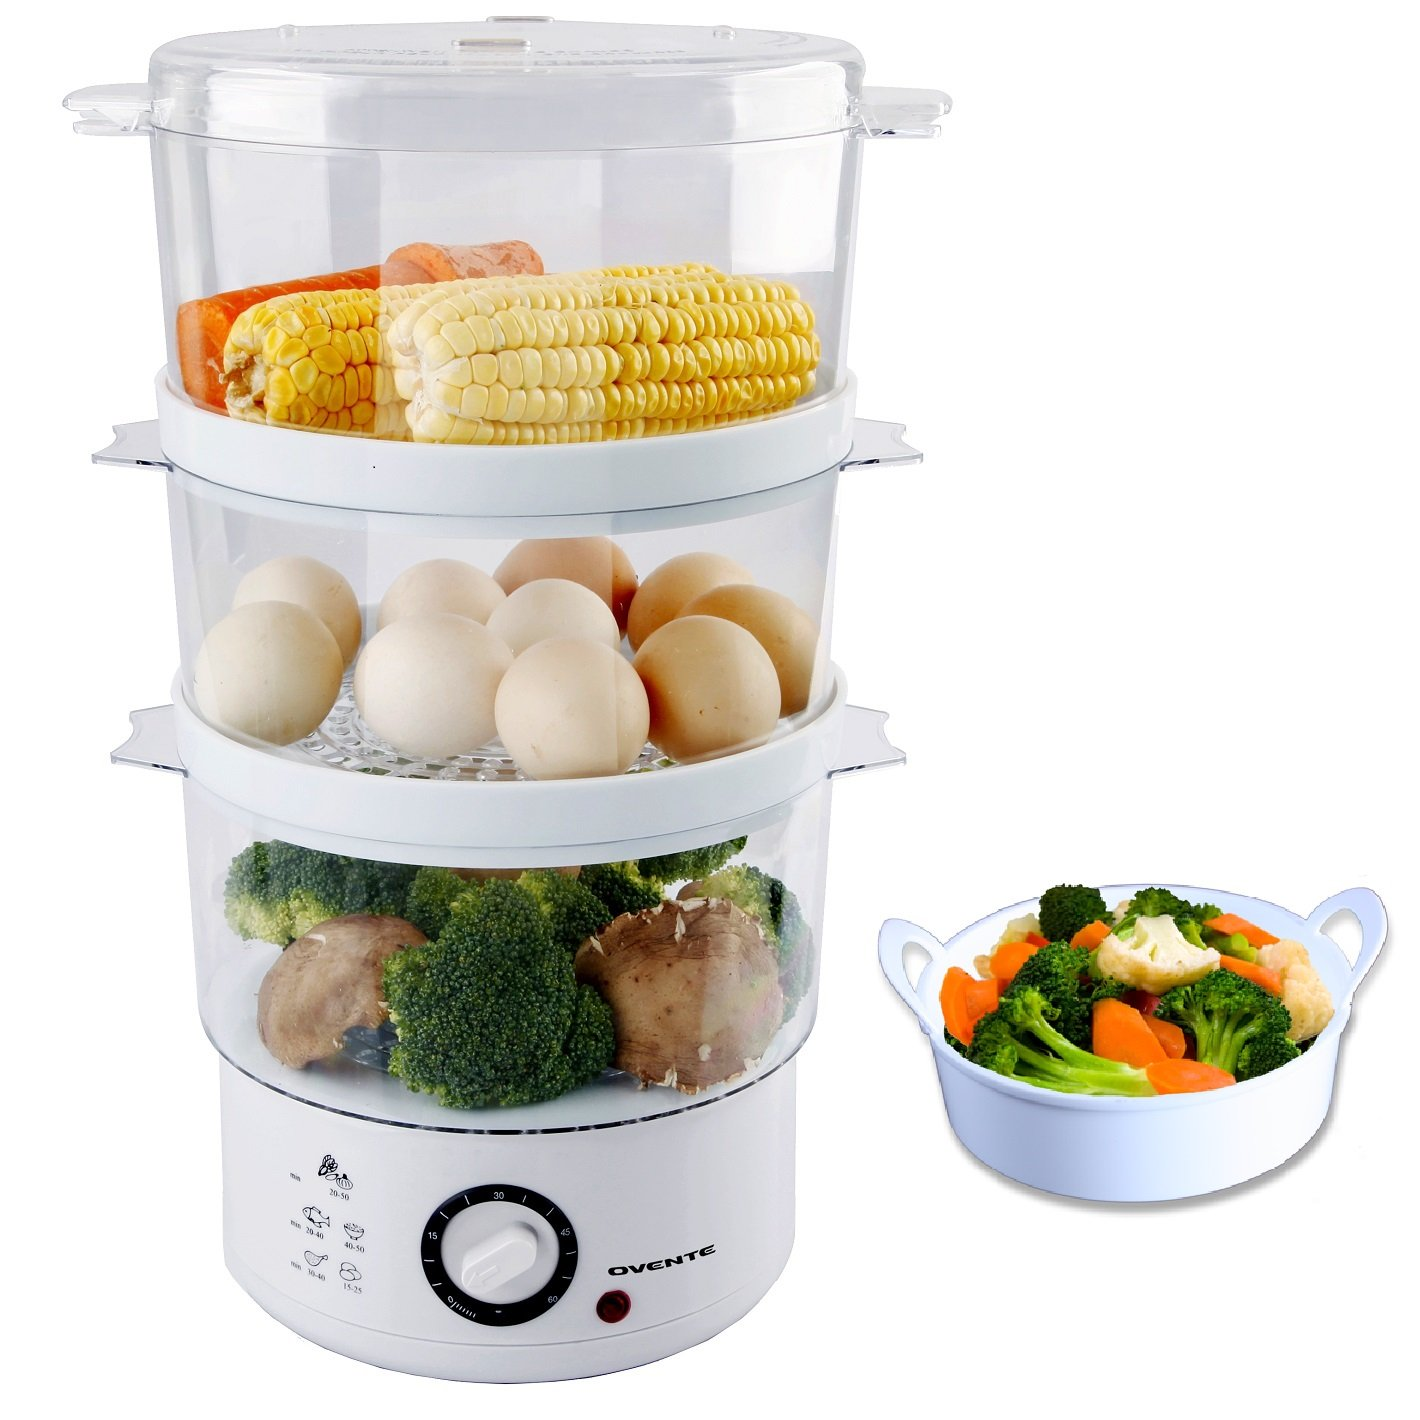 Ovente 7.5-Quart 3-Tier Electric Food Steamer with Rice Bowl